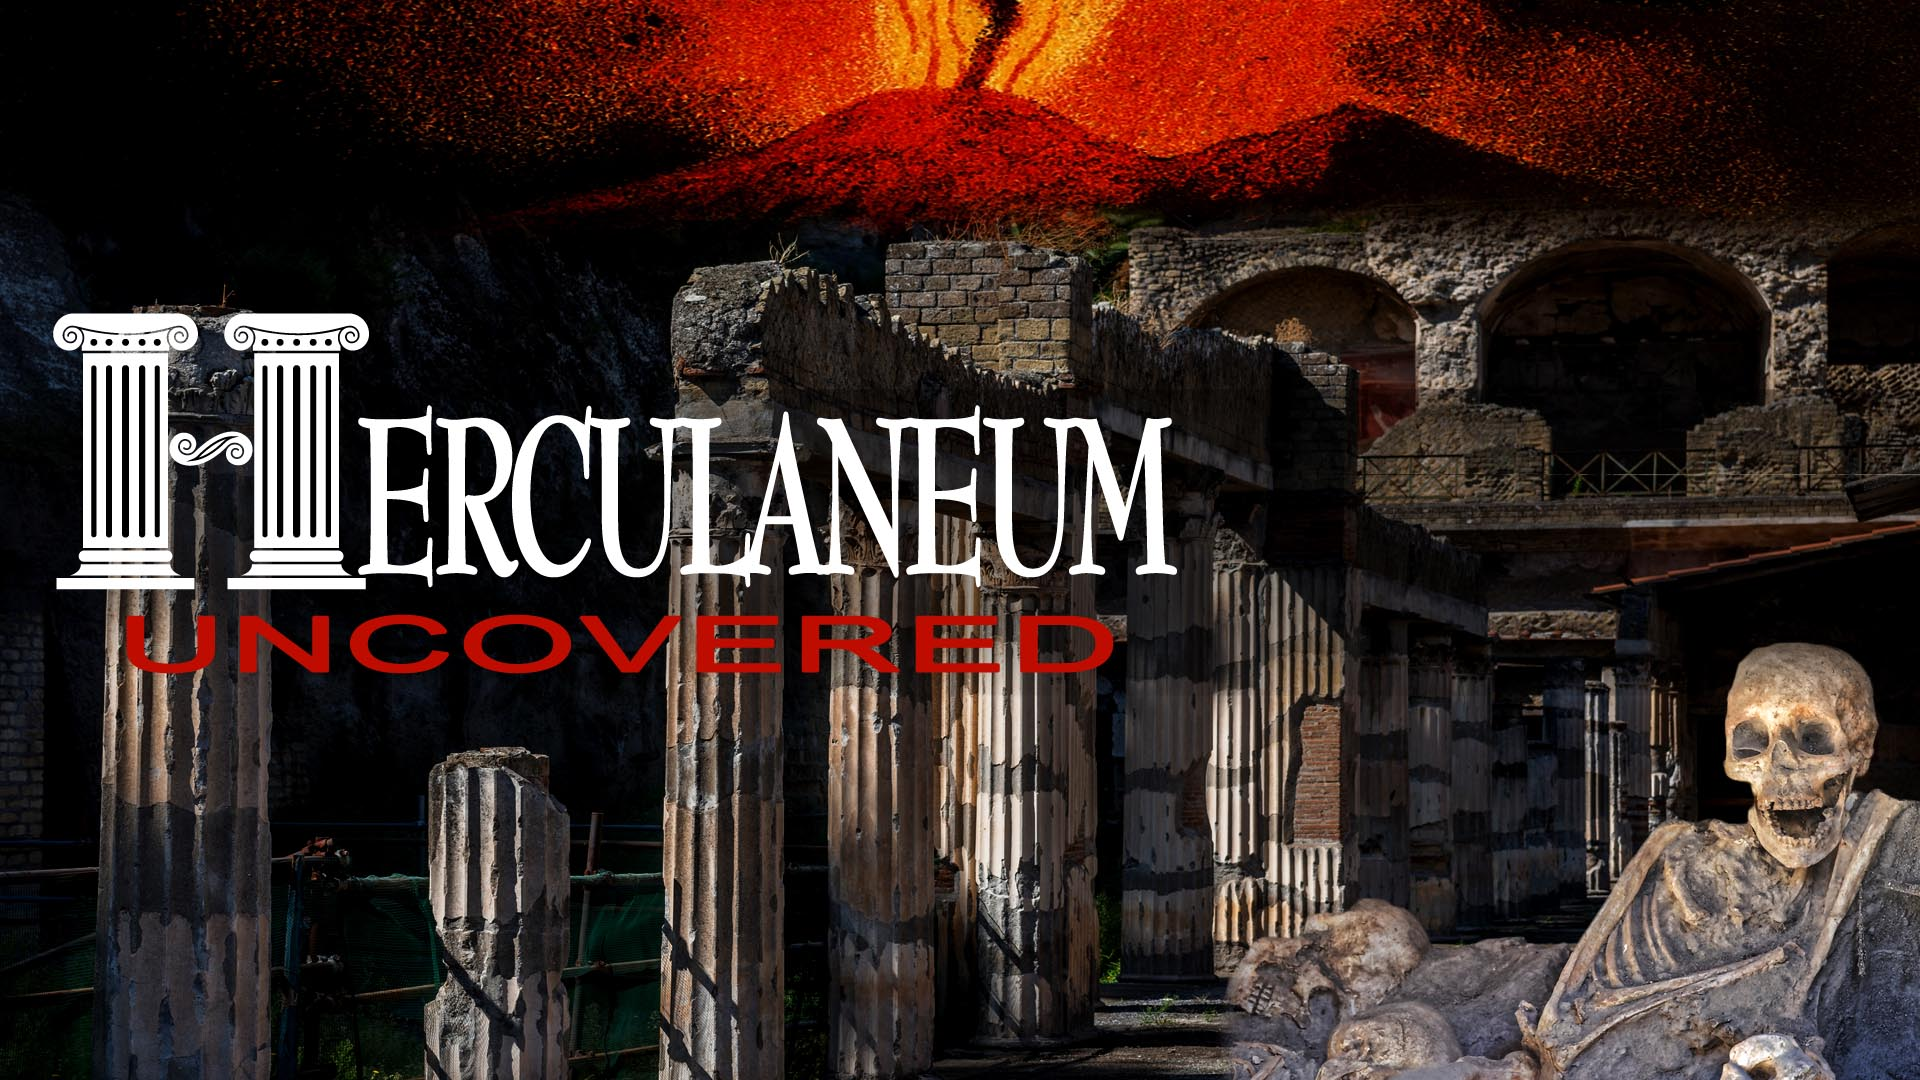 Herculaneum Uncovered -